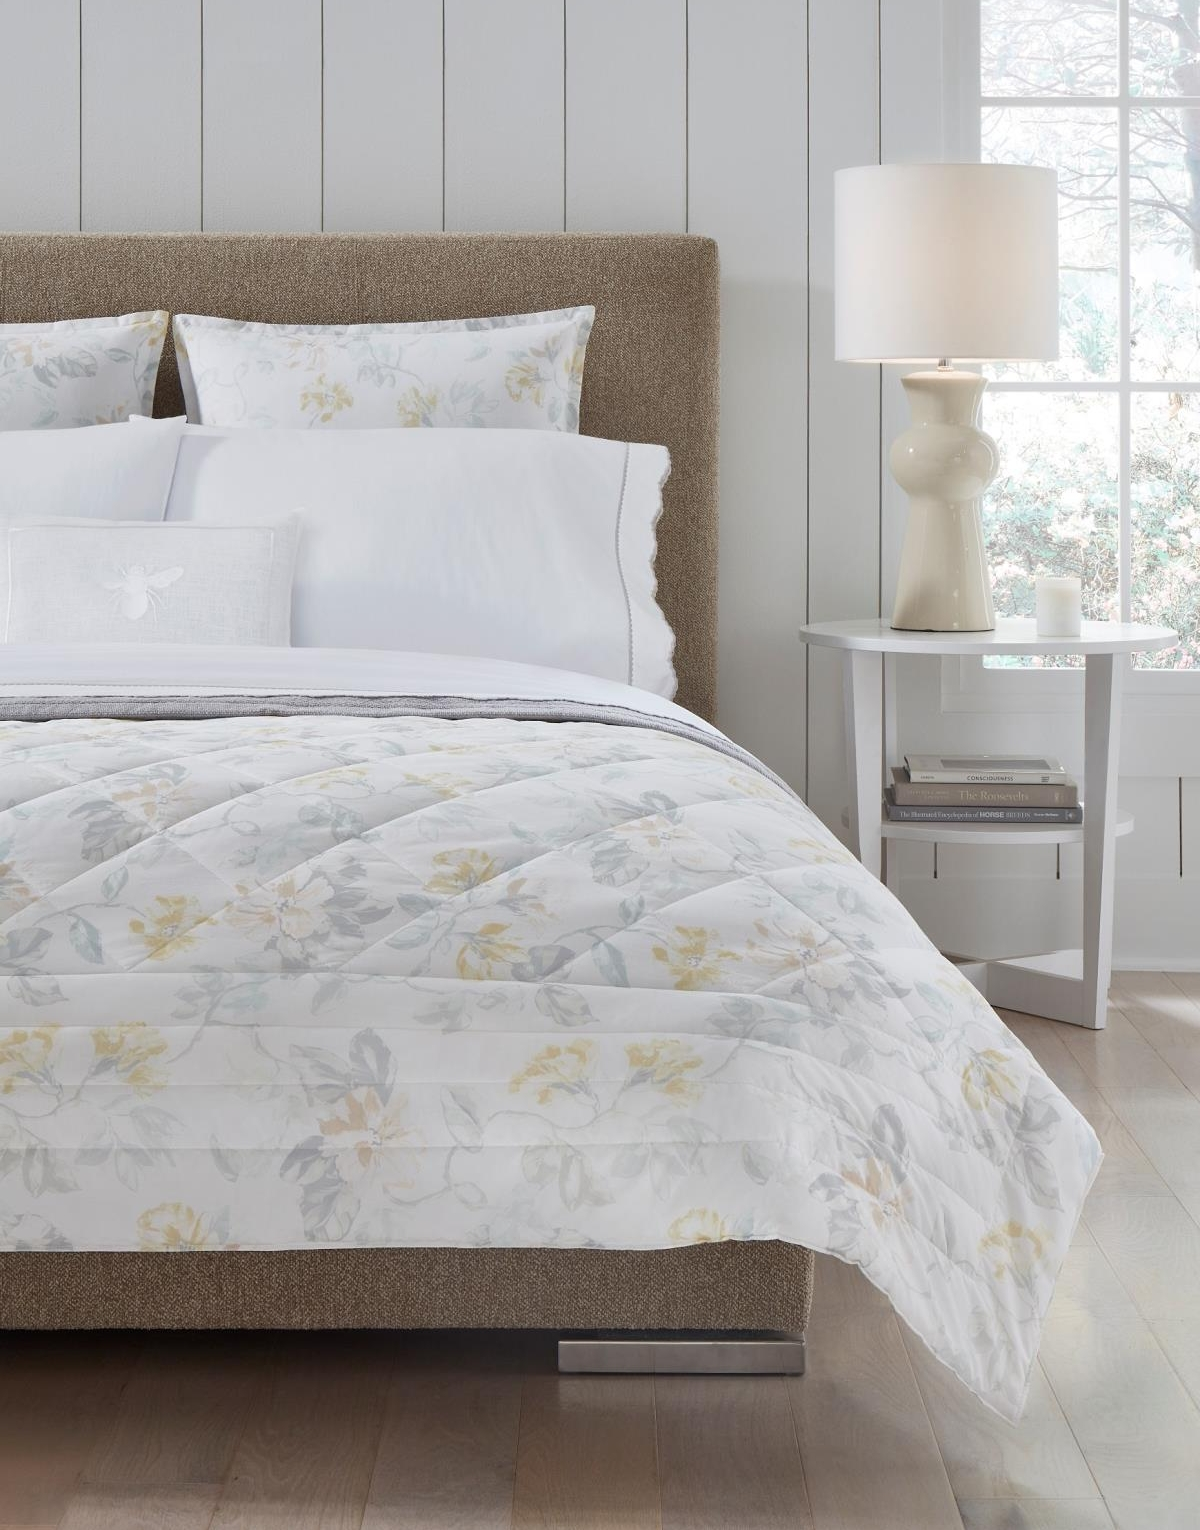 Spello quilted comforter